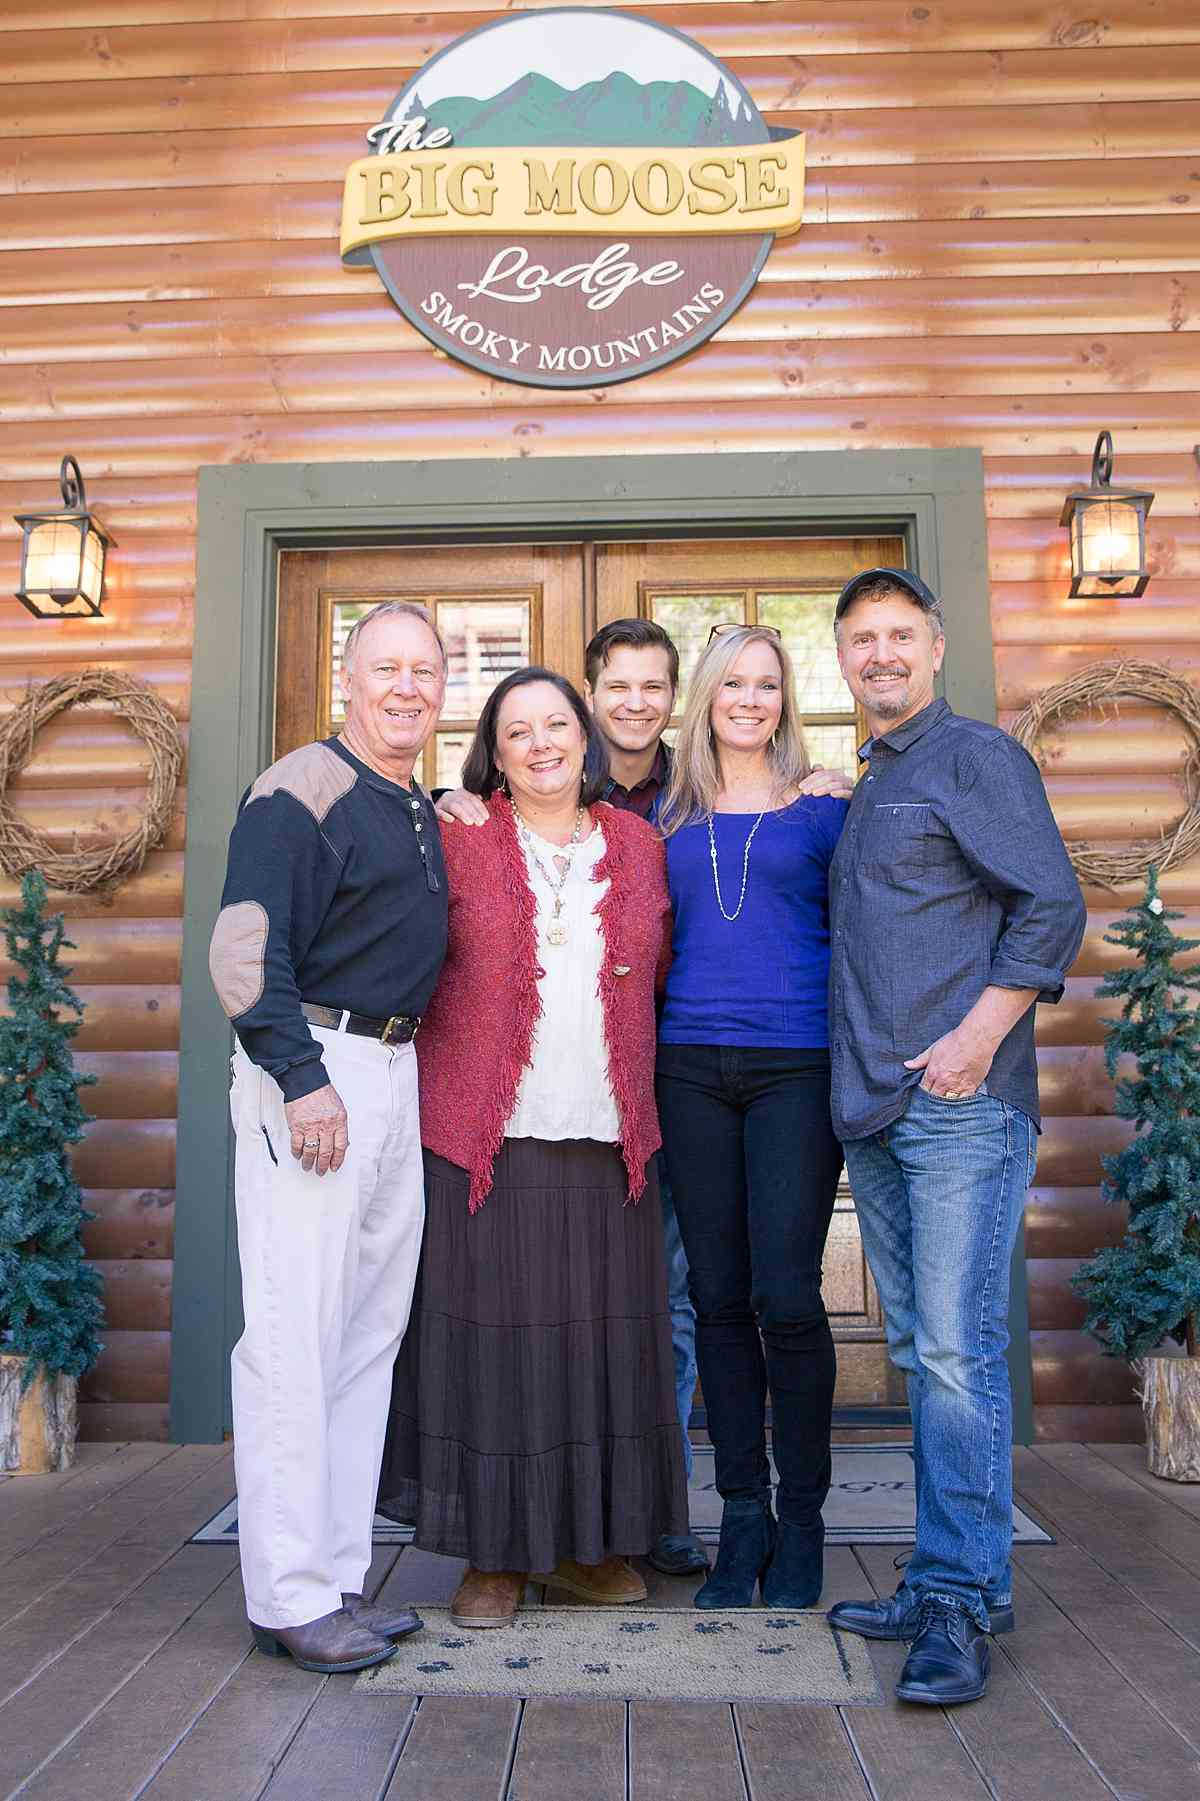 Jim and Denise with two of the artists they carry Abraham Hunter and Mark Keathley along with Mark